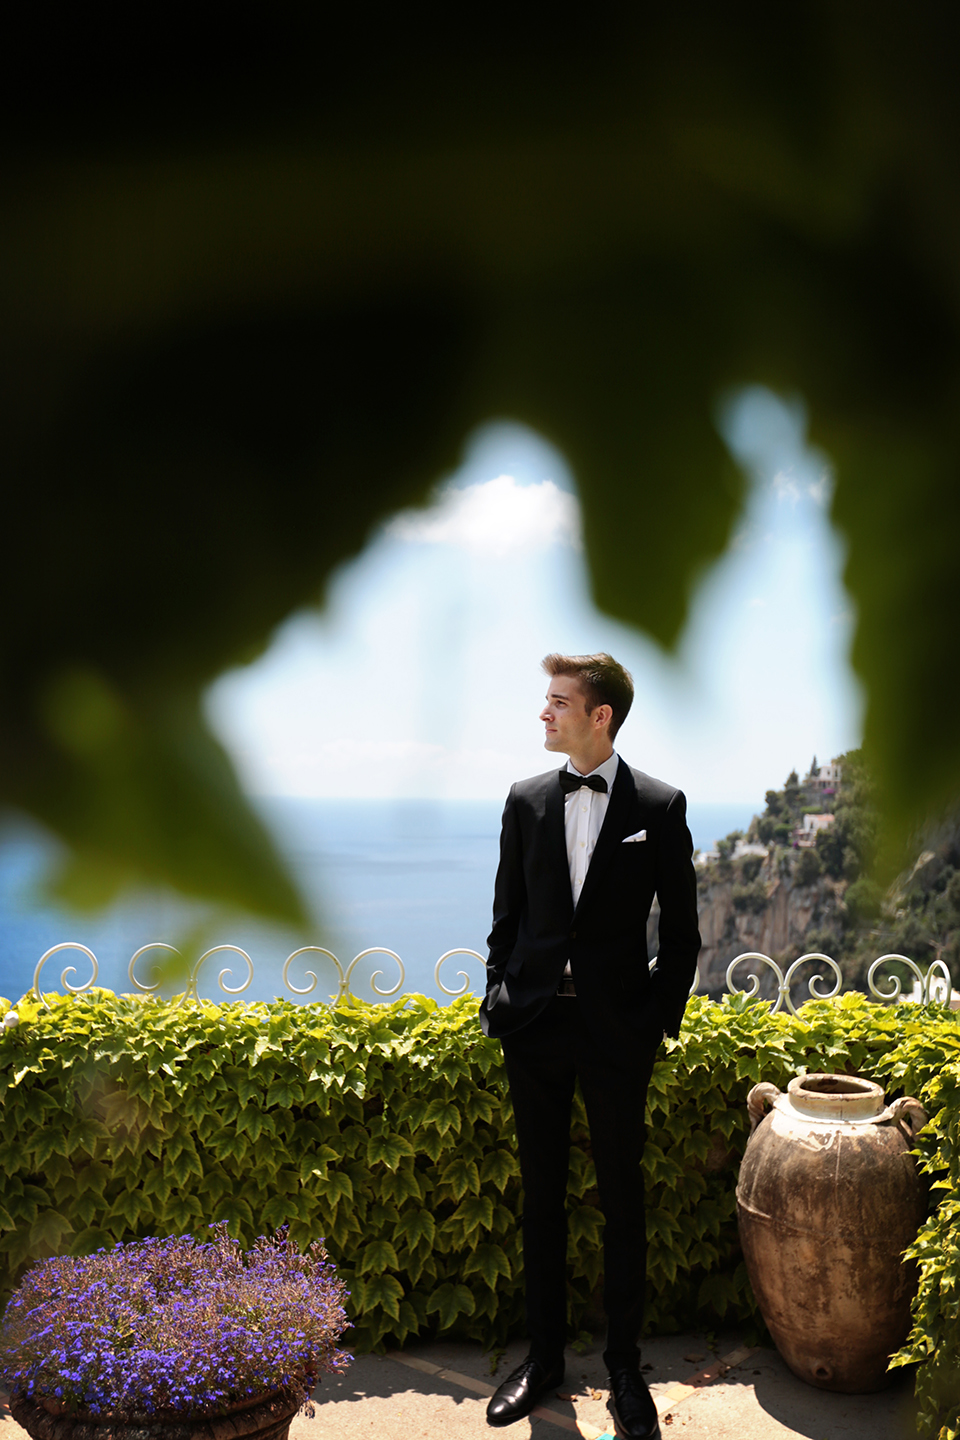 positano-weddin-photographers-italy-wedding-photographers-destination-wedding-photographers-estilo-best-wedding-photographers-in-the-world-casper-bosman-wedding-gown-wedding-style-stylish-modern-wedding-photography-017.jpg